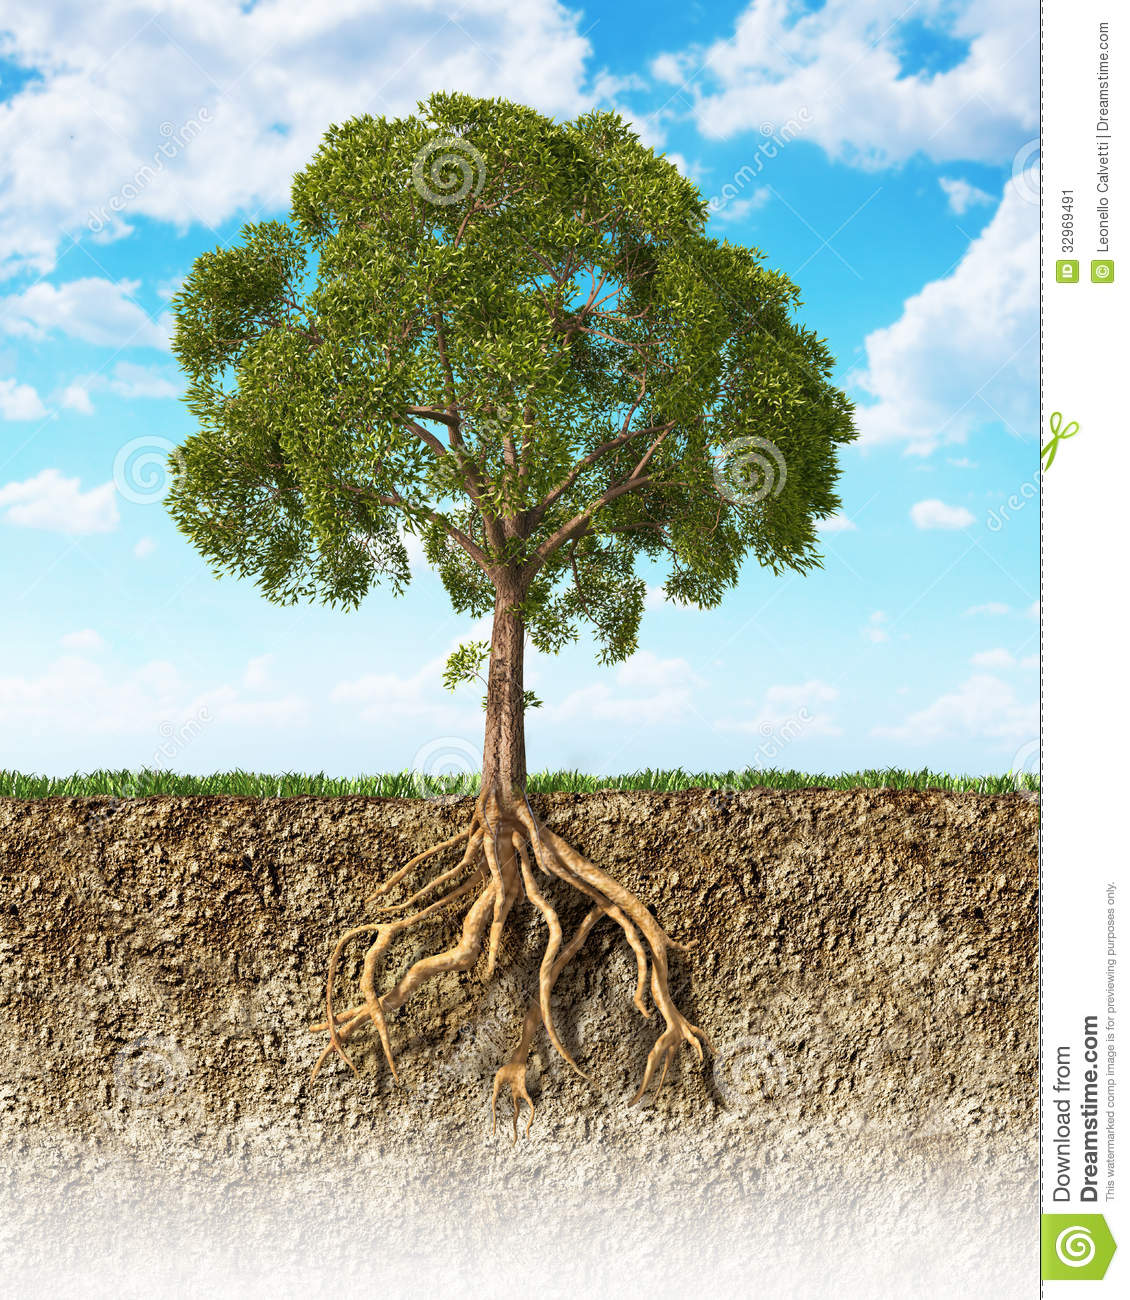 Cross section of soil showing a tree with its roots.